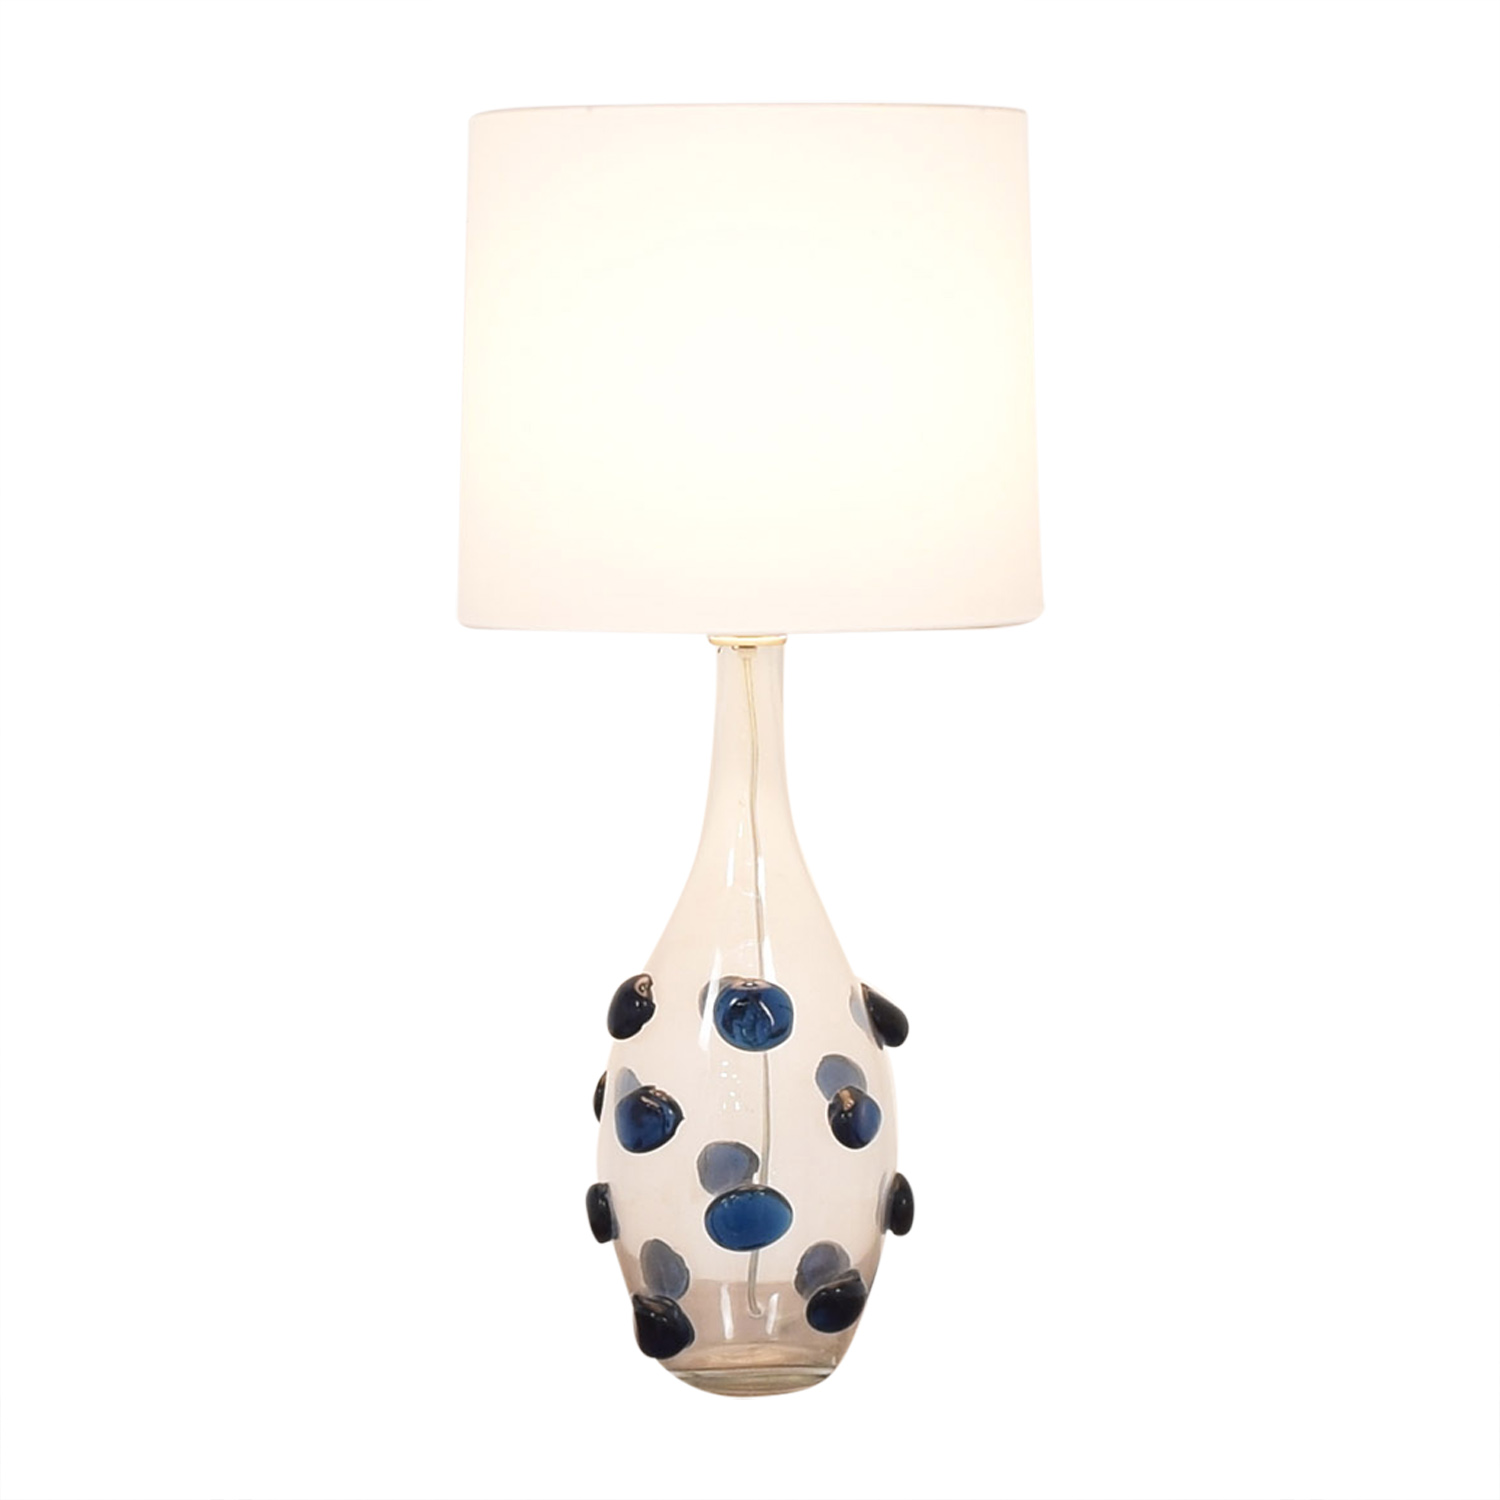 Glass Table Lamp used